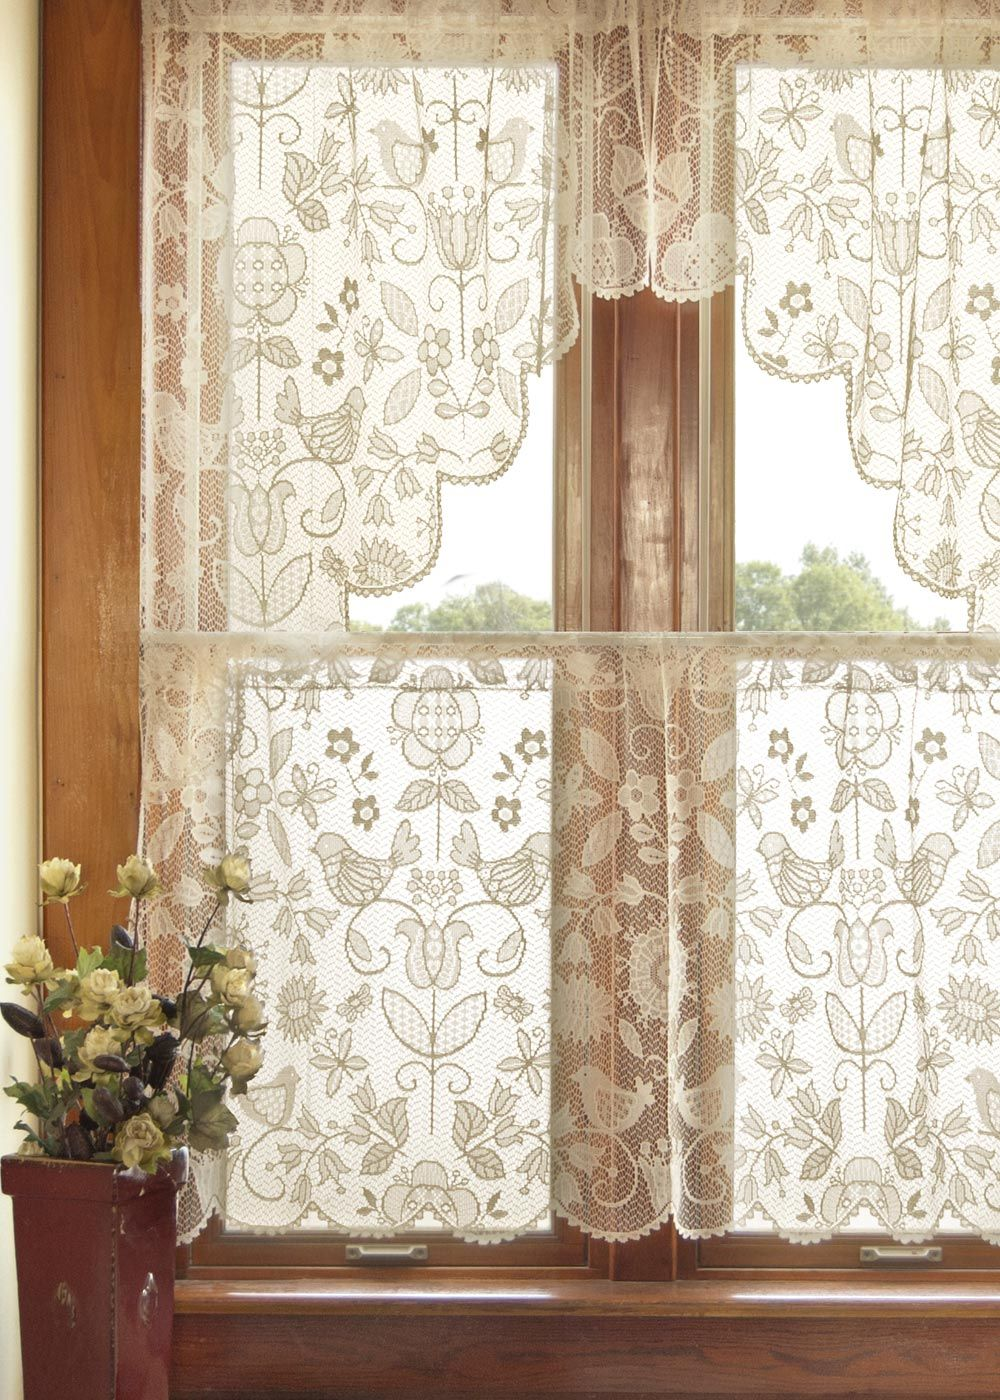 Heritage Lace Folk Art Curtains LUV